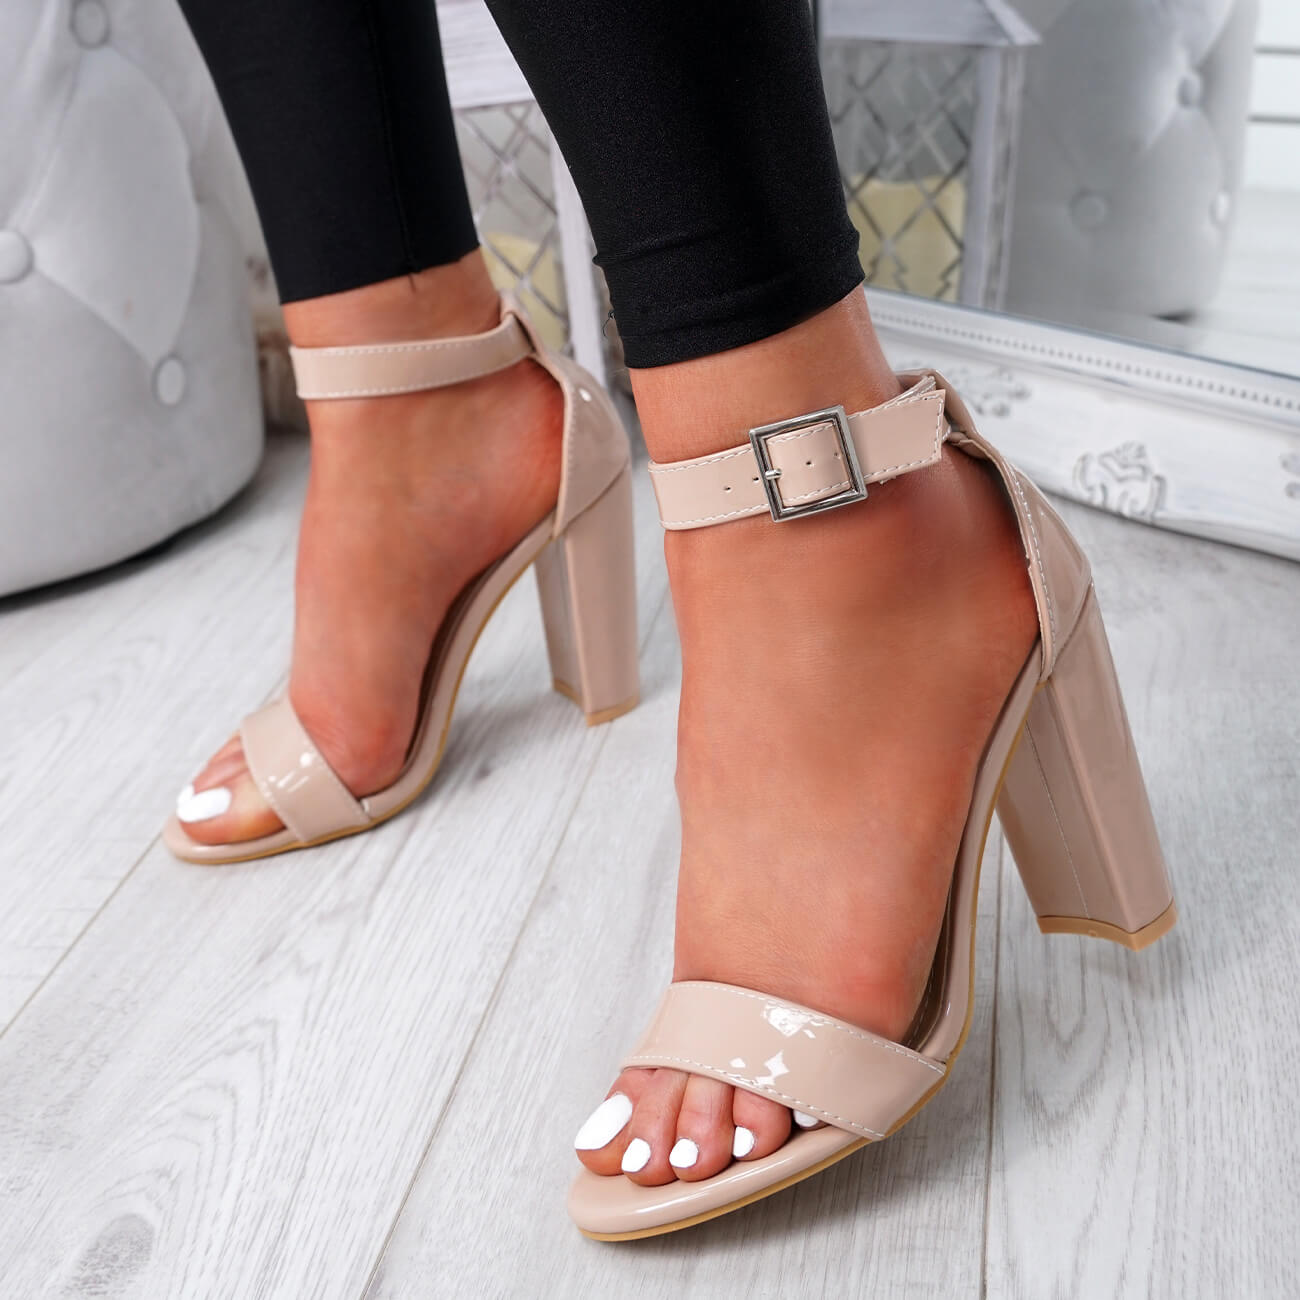 WOMENS-LADIES-HIGH-BLOCK-HEEL-PARTY-SANDALS-PEEP-TOE-ANKLE-STRAP-SHOES-SIZE-UK thumbnail 10